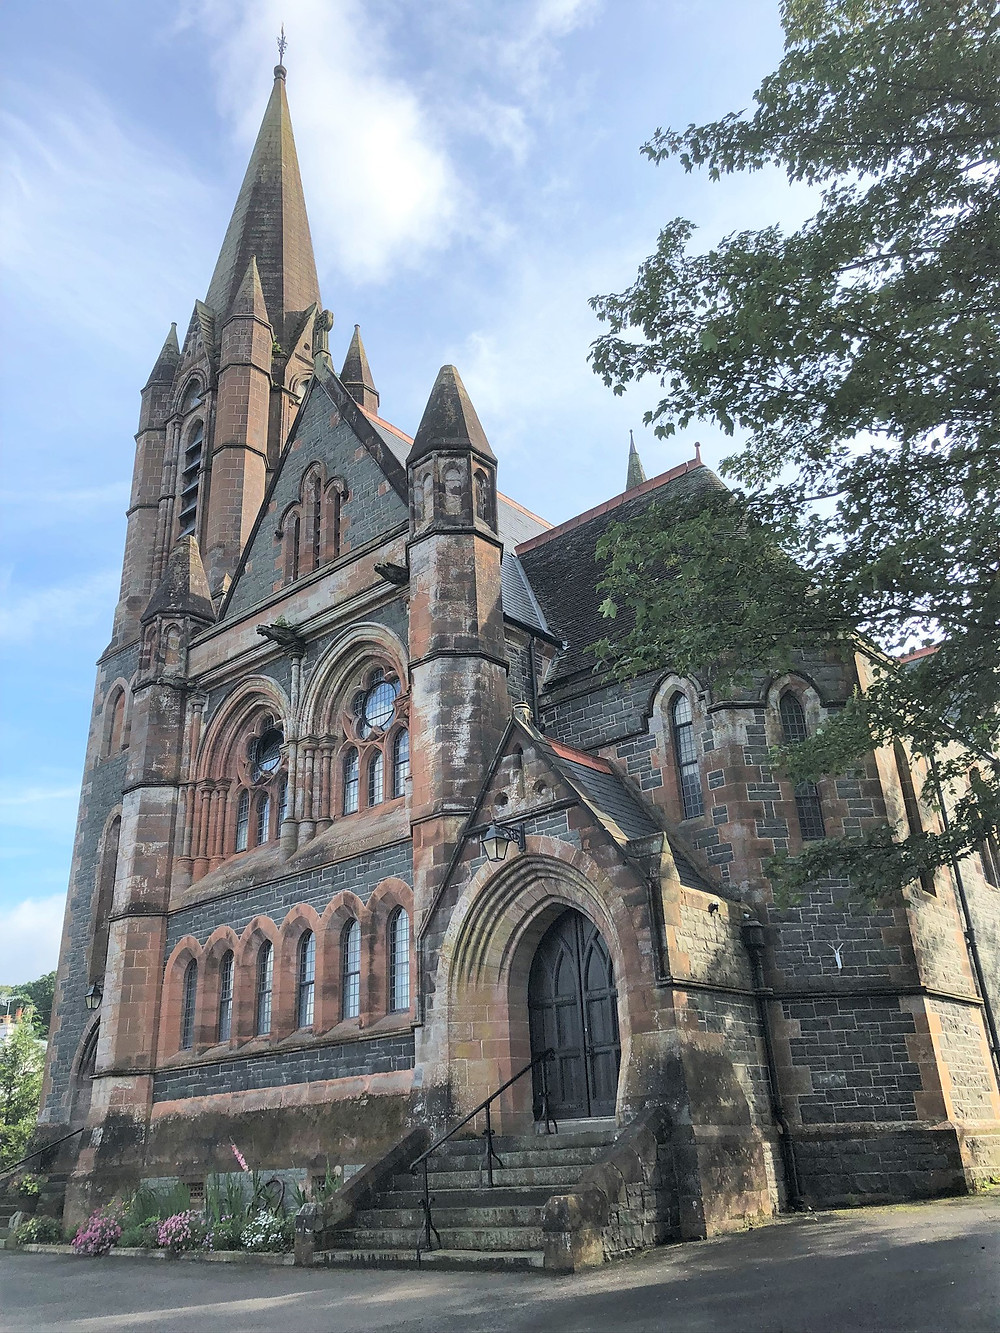 Airbnb in old church in the village of Moffat in Southern Scotland